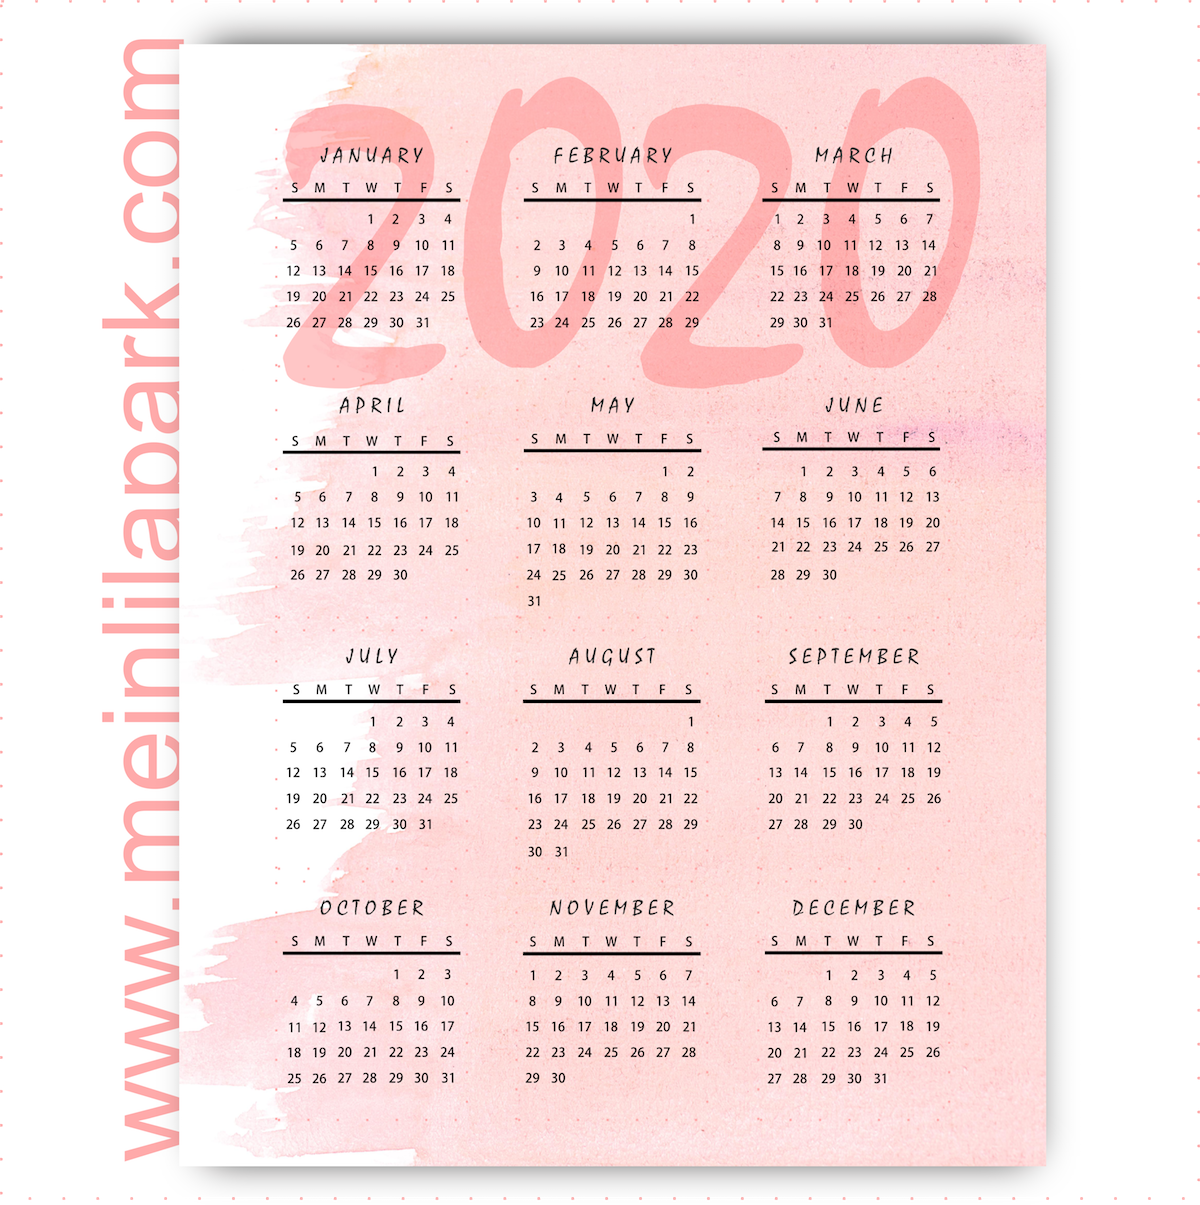 Thinking ahead: printable 2020 calendar in pink marshmallow